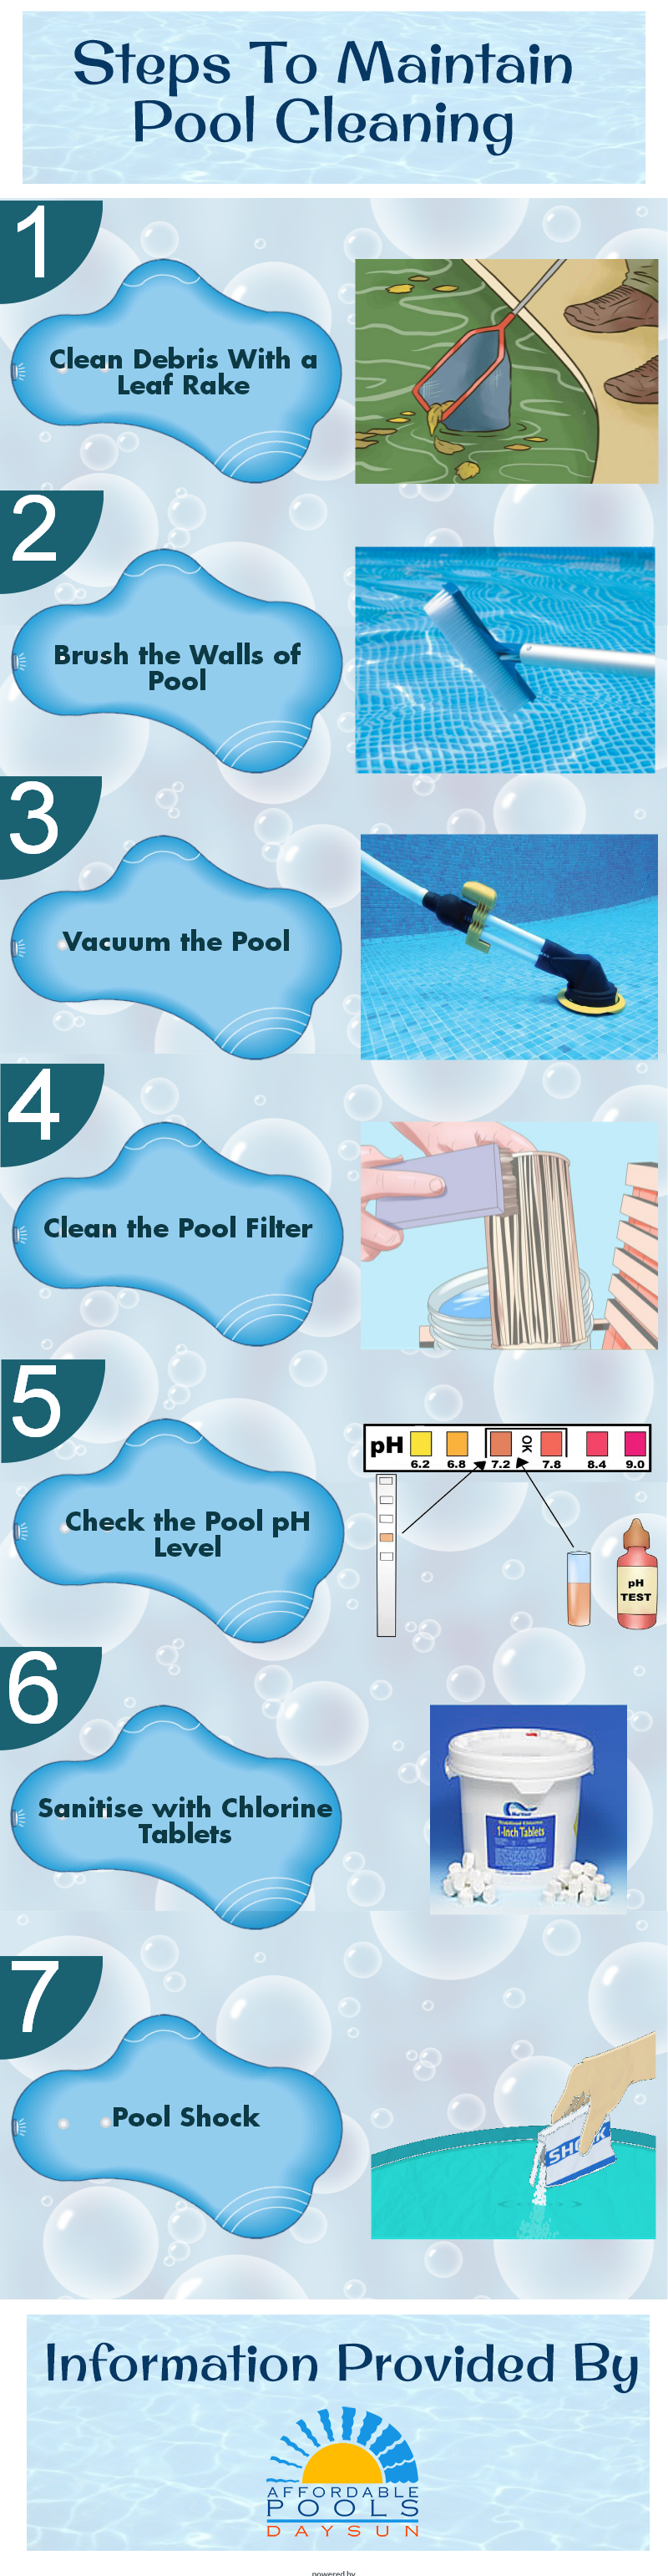 Swimming Pools Require Proper Cleaning And Maintenance The Various Maintenance Steps Involve